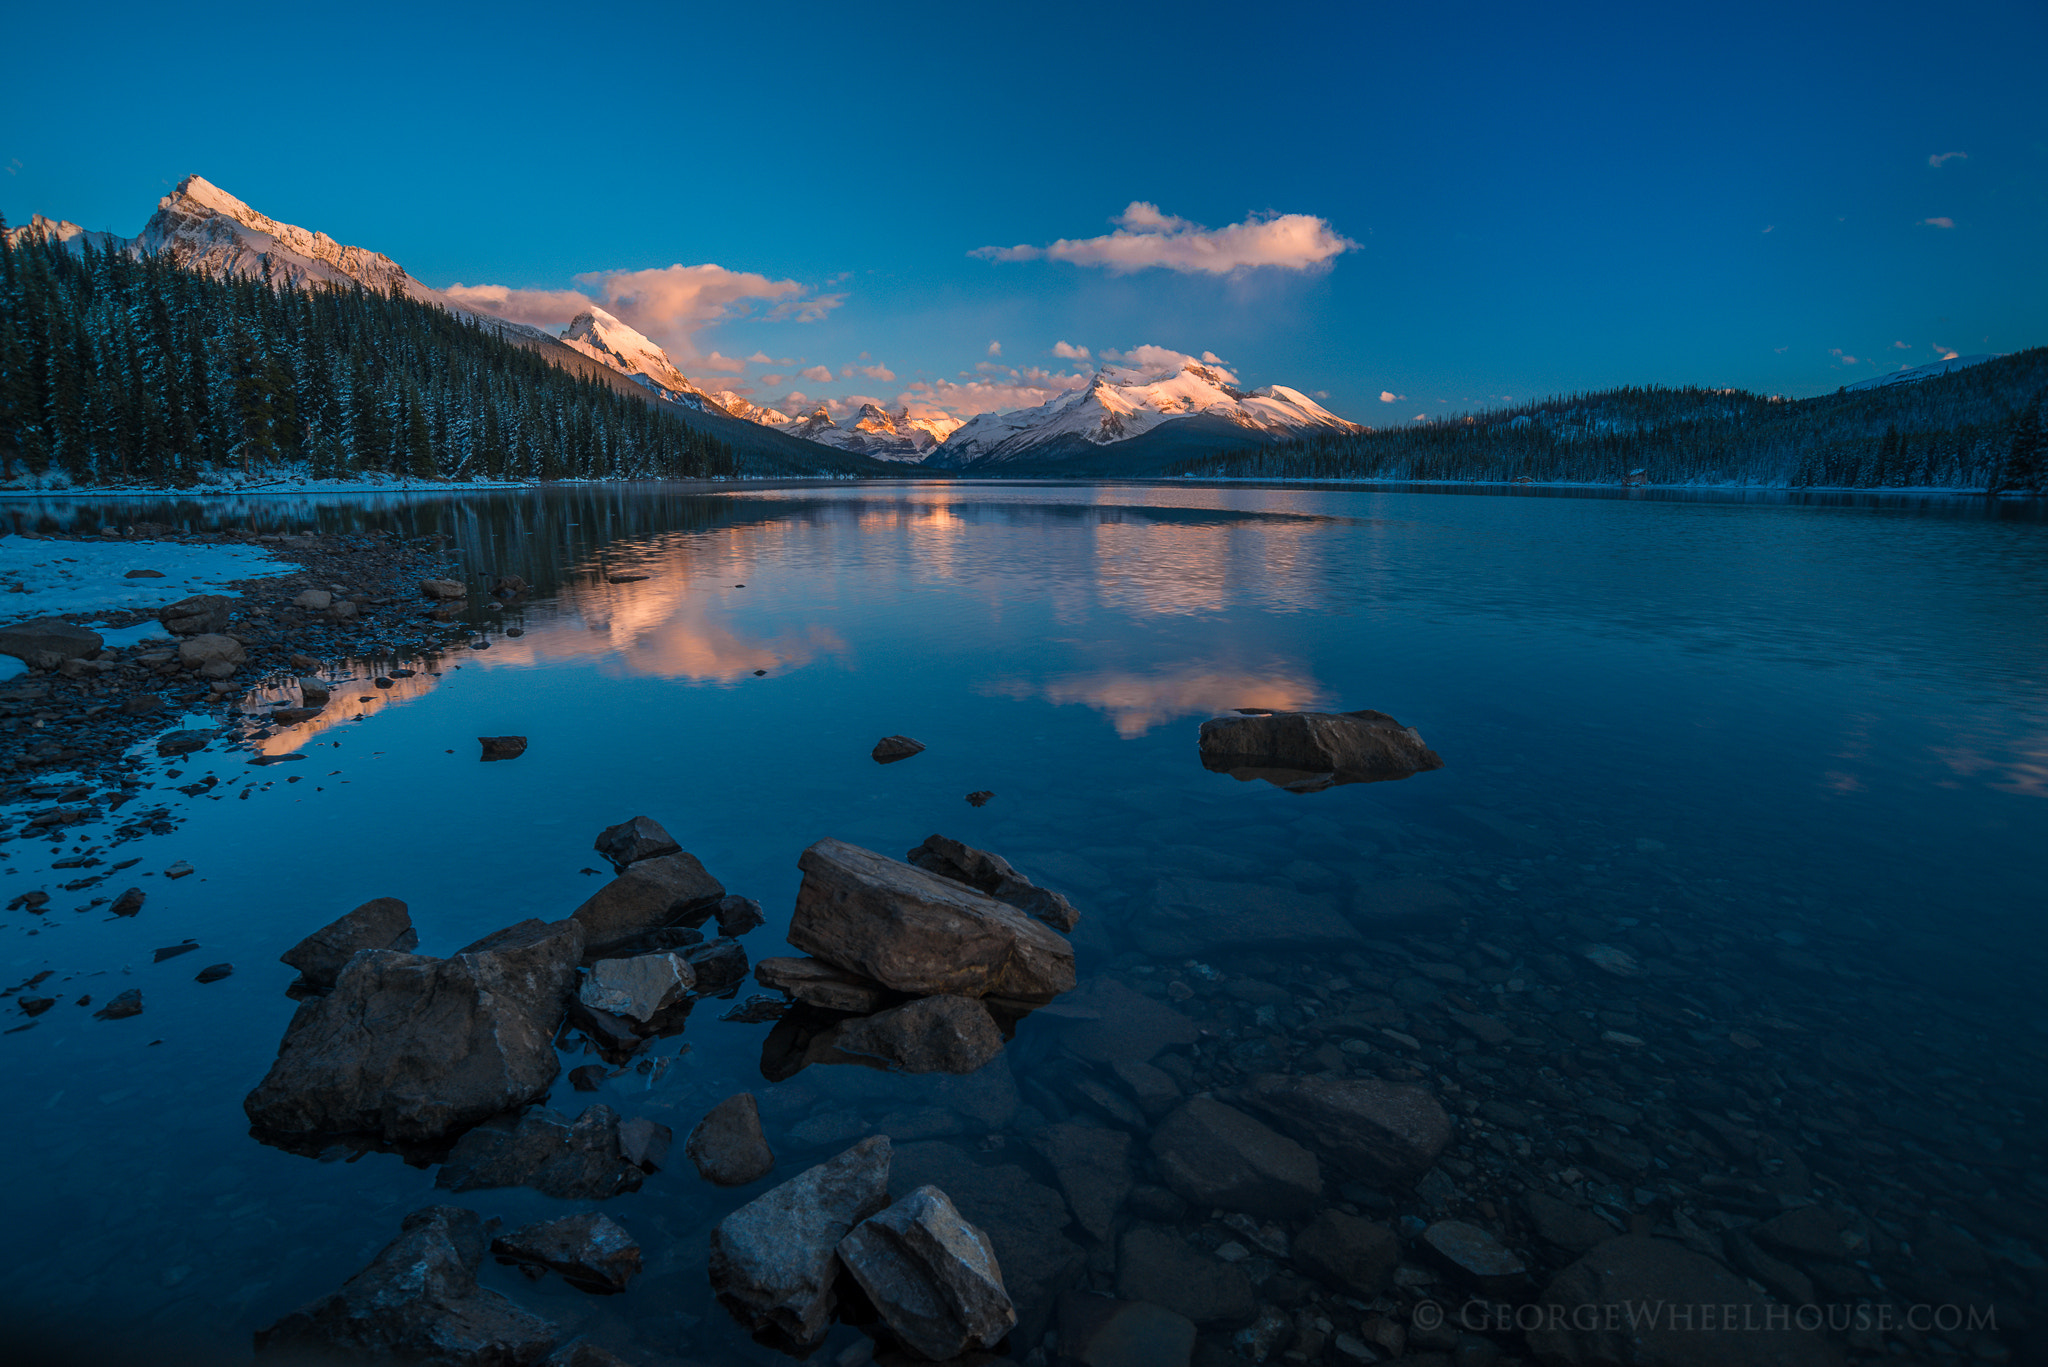 Photograph Maligne Lake Sunset by George Wheelhouse on 500px